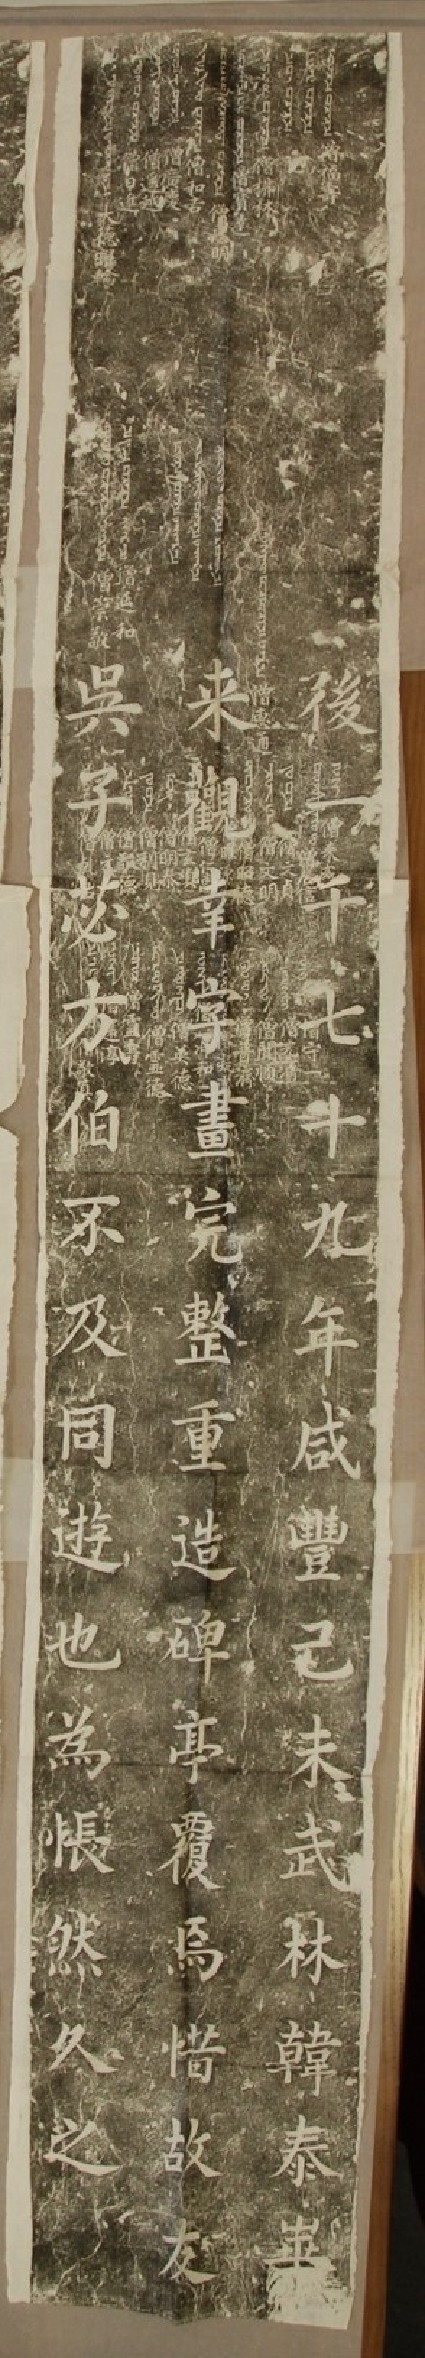 Qing comment on Tang stele The Nestorian Stele